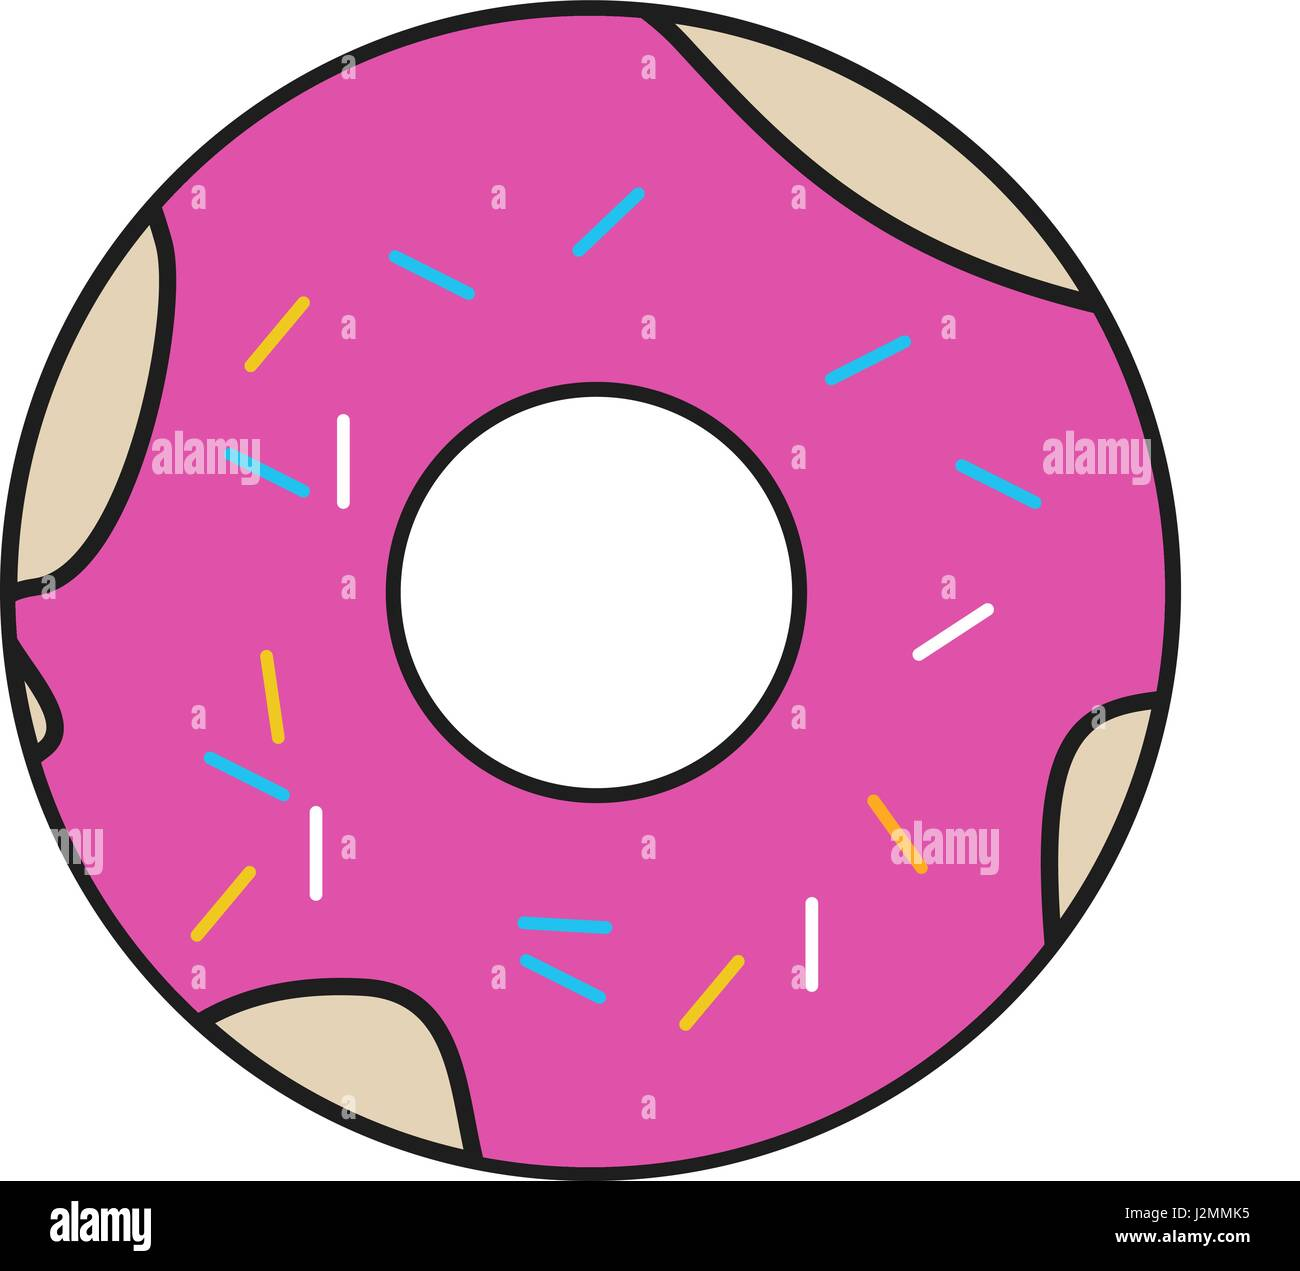 Cartoon Doughnut Factory: Doughnut Stock Vector Images